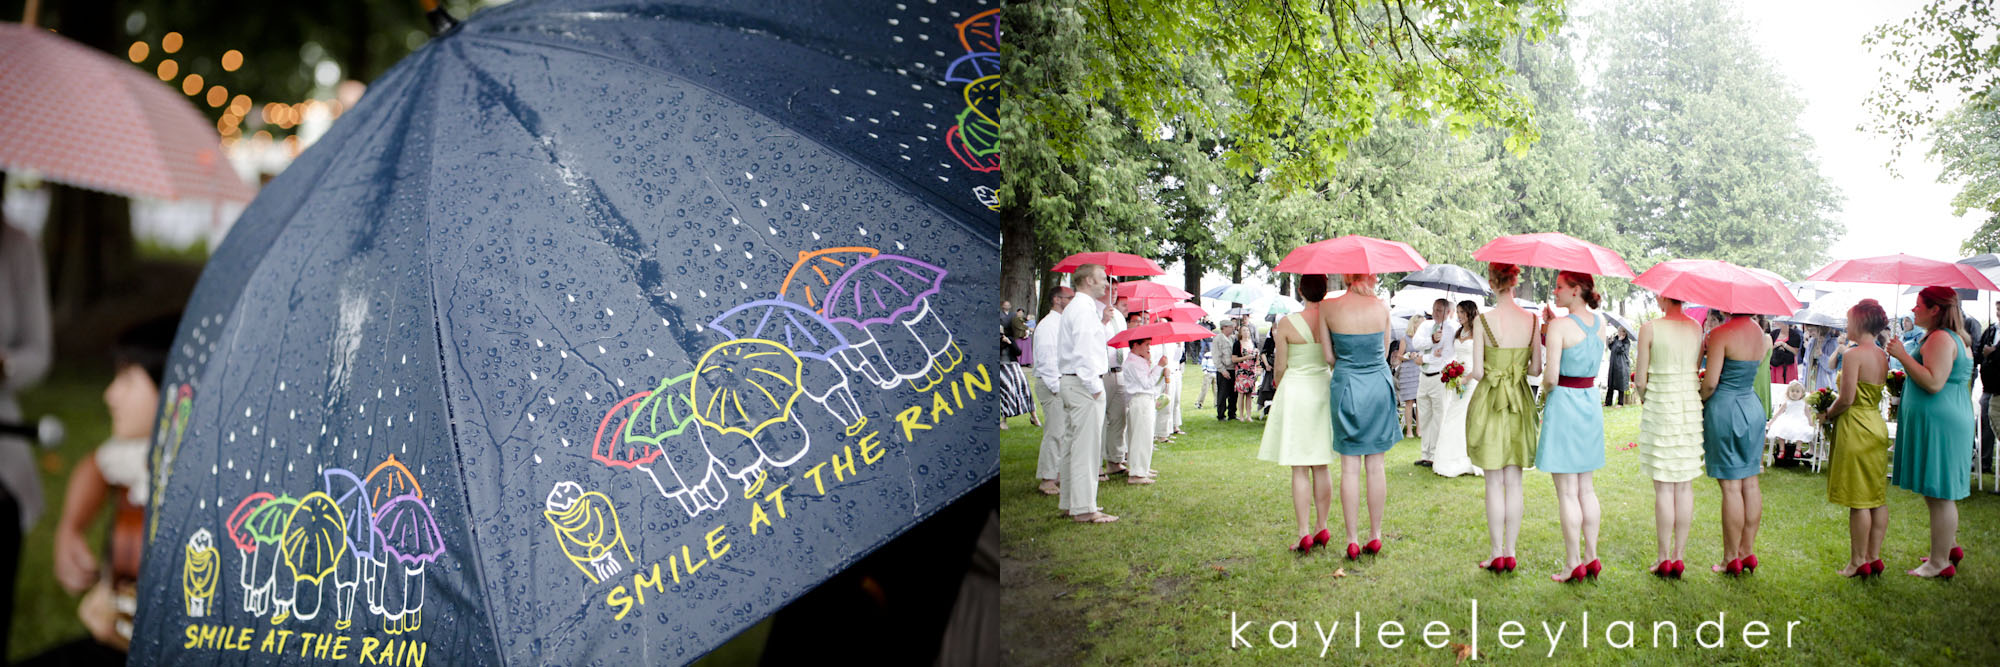 0442 Bellingham DIY Wedding | A Wedding in the rain never looked so good!| Kaylee Eylander